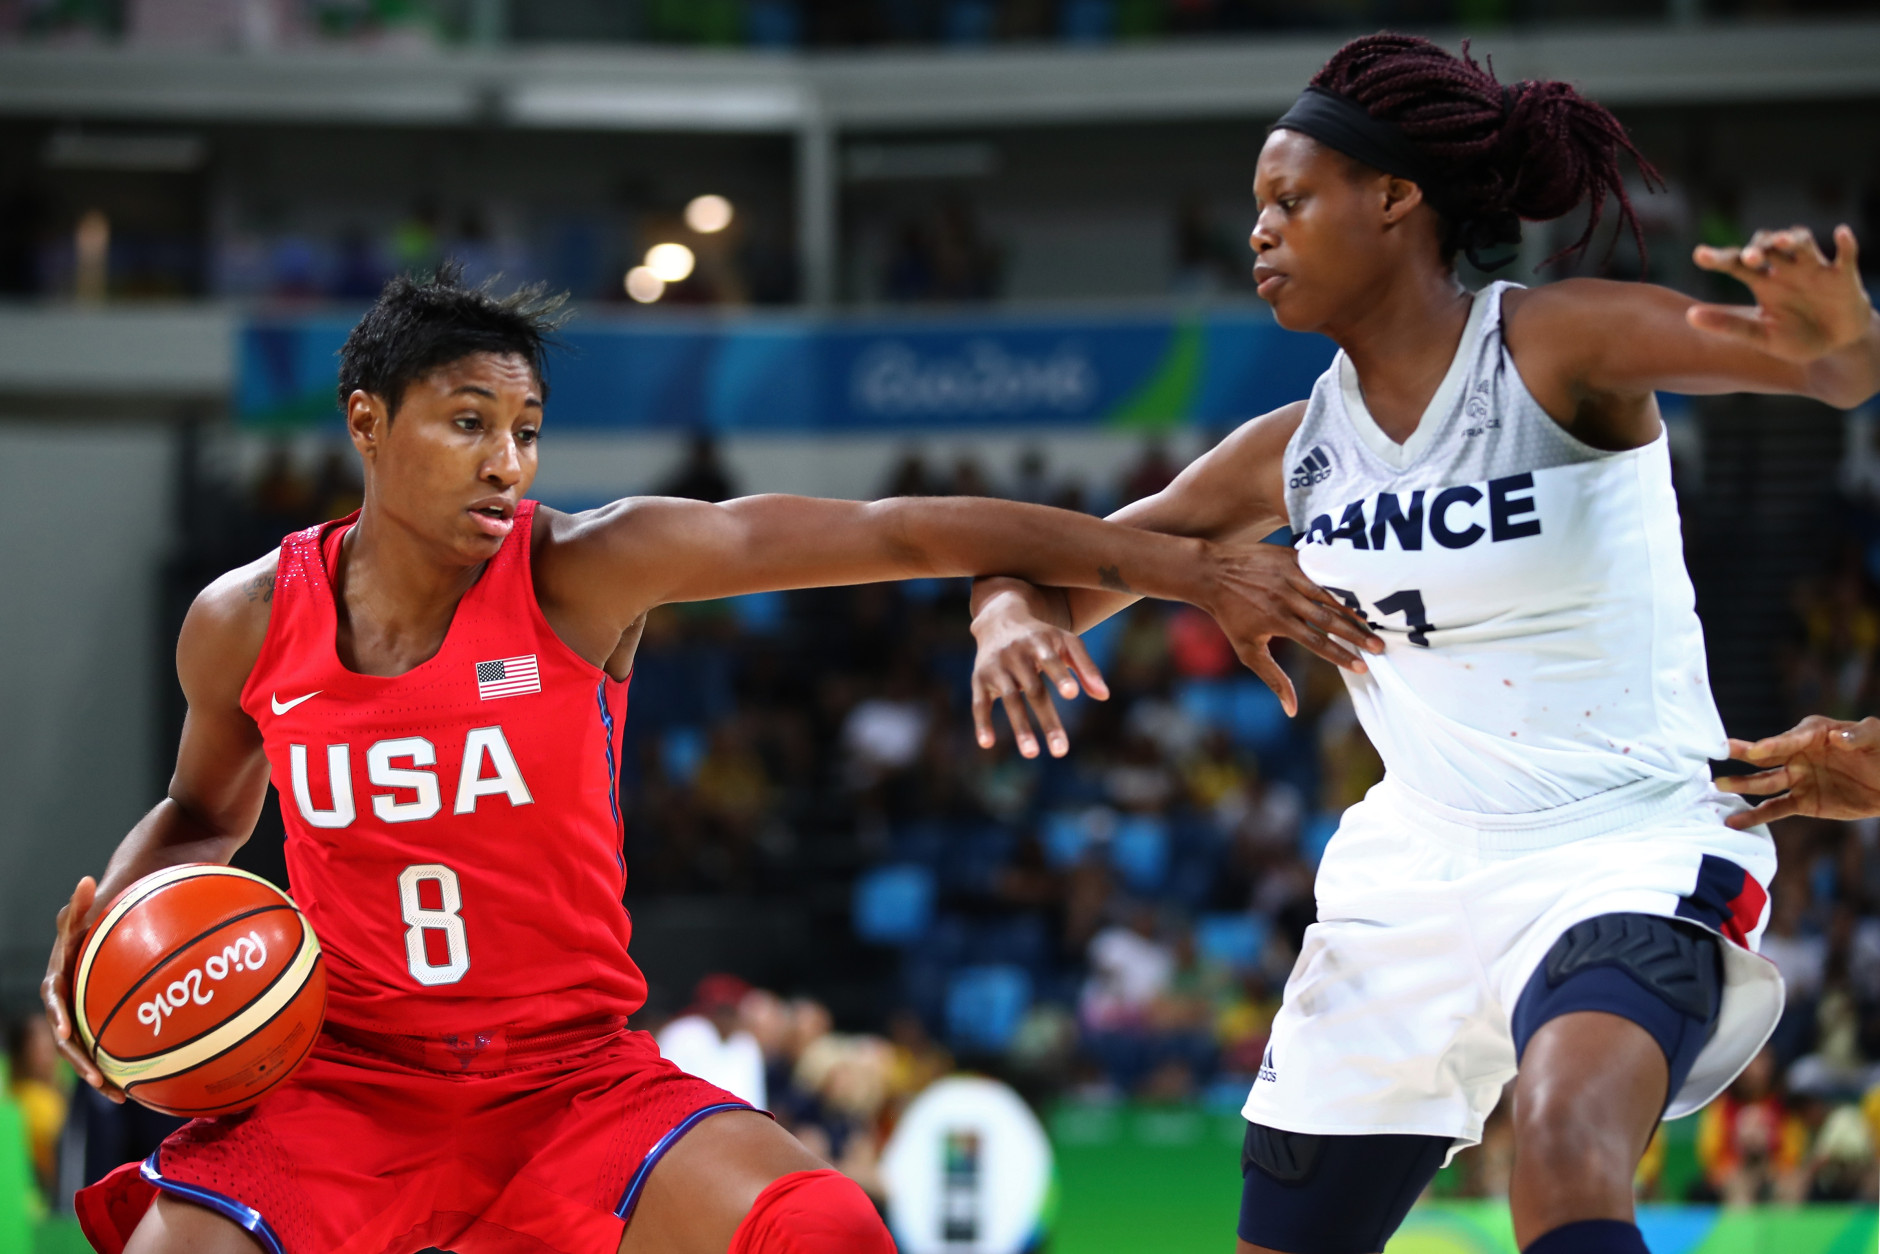 RIO DE JANEIRO, BRAZIL - AUGUST 18:  Angel Mccoughtry #8 of the United States moves the ball against Laetitia Kamba #21 of France during a Women's Semifinal Basketball game between the United States and France on Day 13 of the Rio 2016 Olympic Games at Carioca Arena 1 on August 18, 2016 in Rio de Janeiro, Brazil.  (Photo by Mark Kolbe/Getty Images)